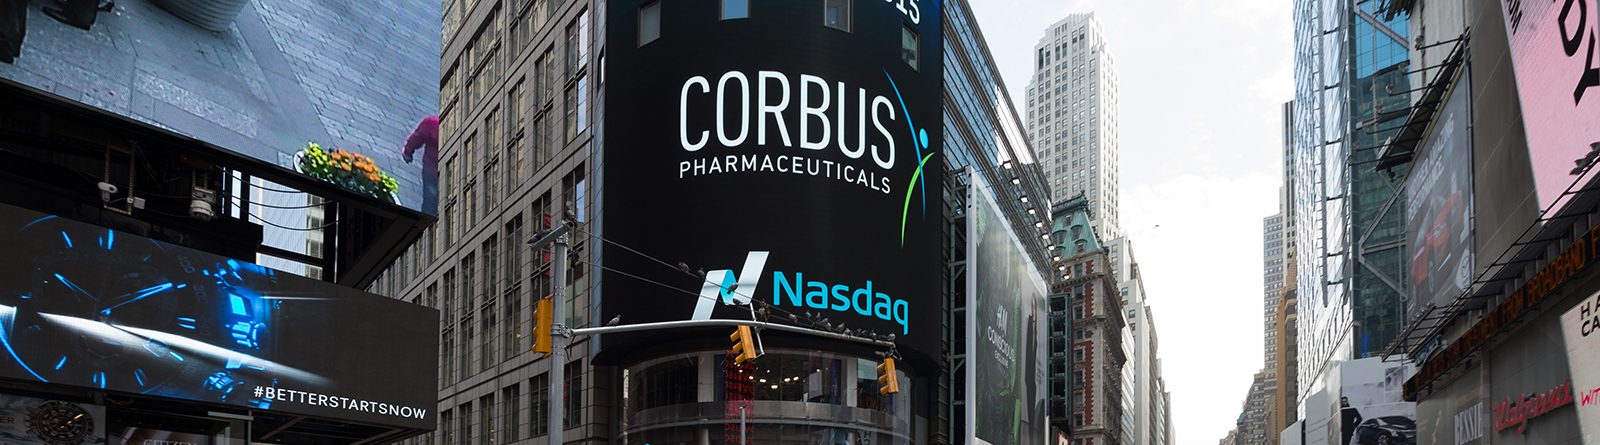 Corbus Pharmaceuticals Reports 2015 Second Quarter Financial Results and Provides Business Update Banner